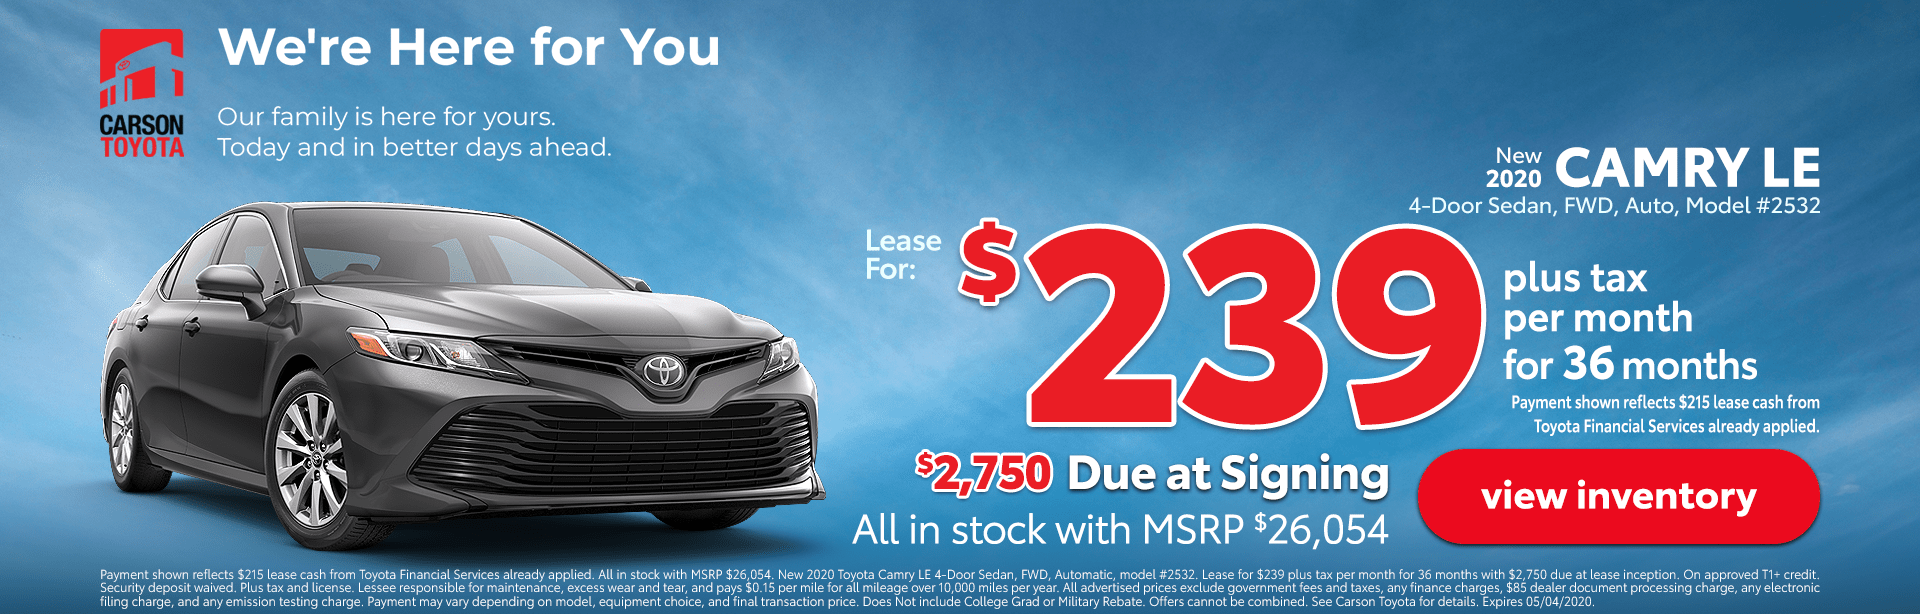 Camry LE Deal